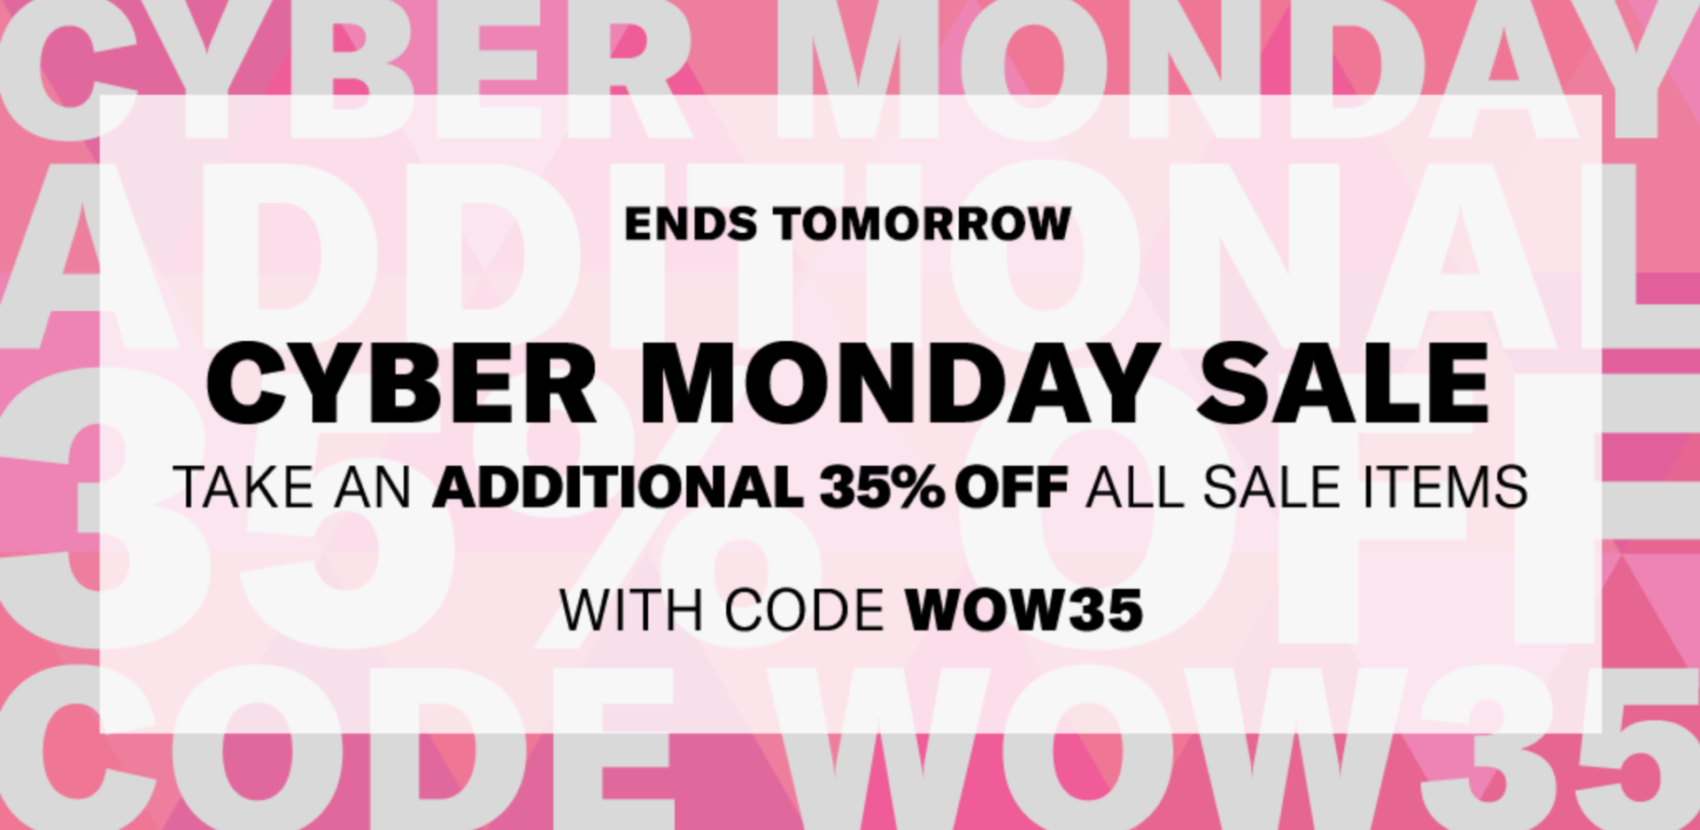 Cyber Monday Sale Picks from Shopbop!